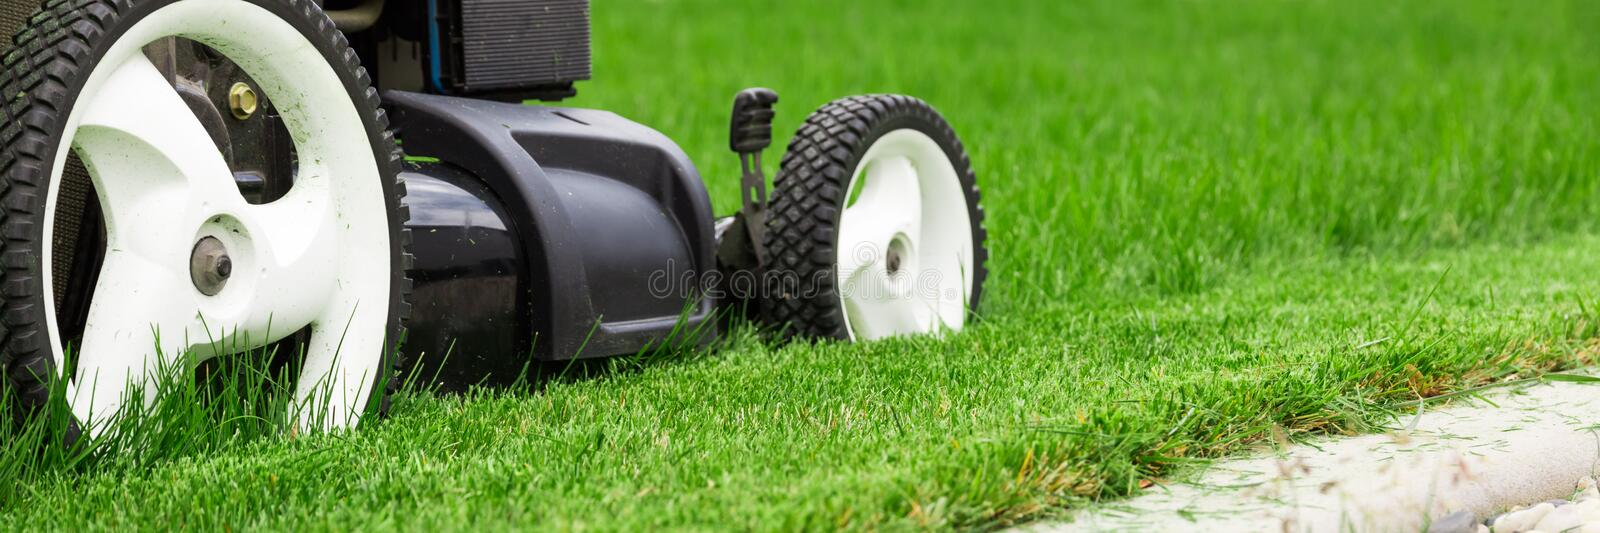 Lawn mower. On green lawn royalty free stock photos